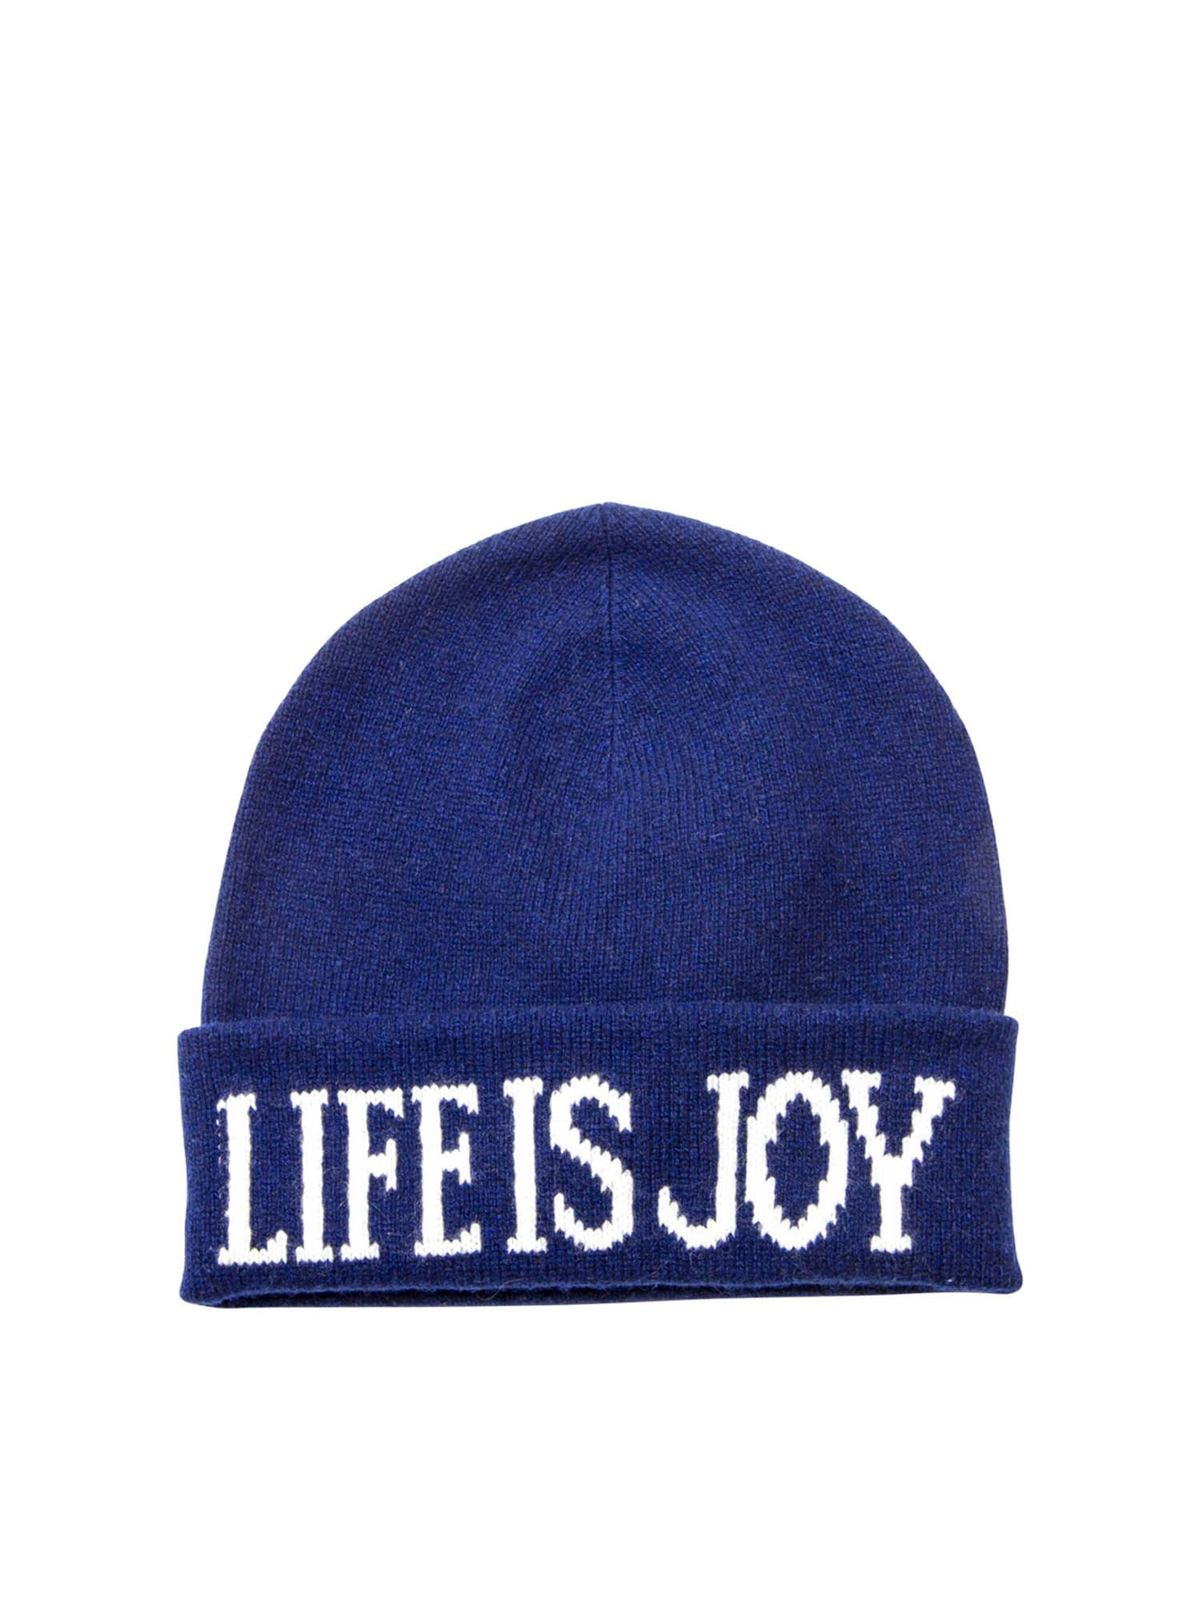 ALBERTA FERRETTI LIFE IS A JOY BEANIE IN BLUE